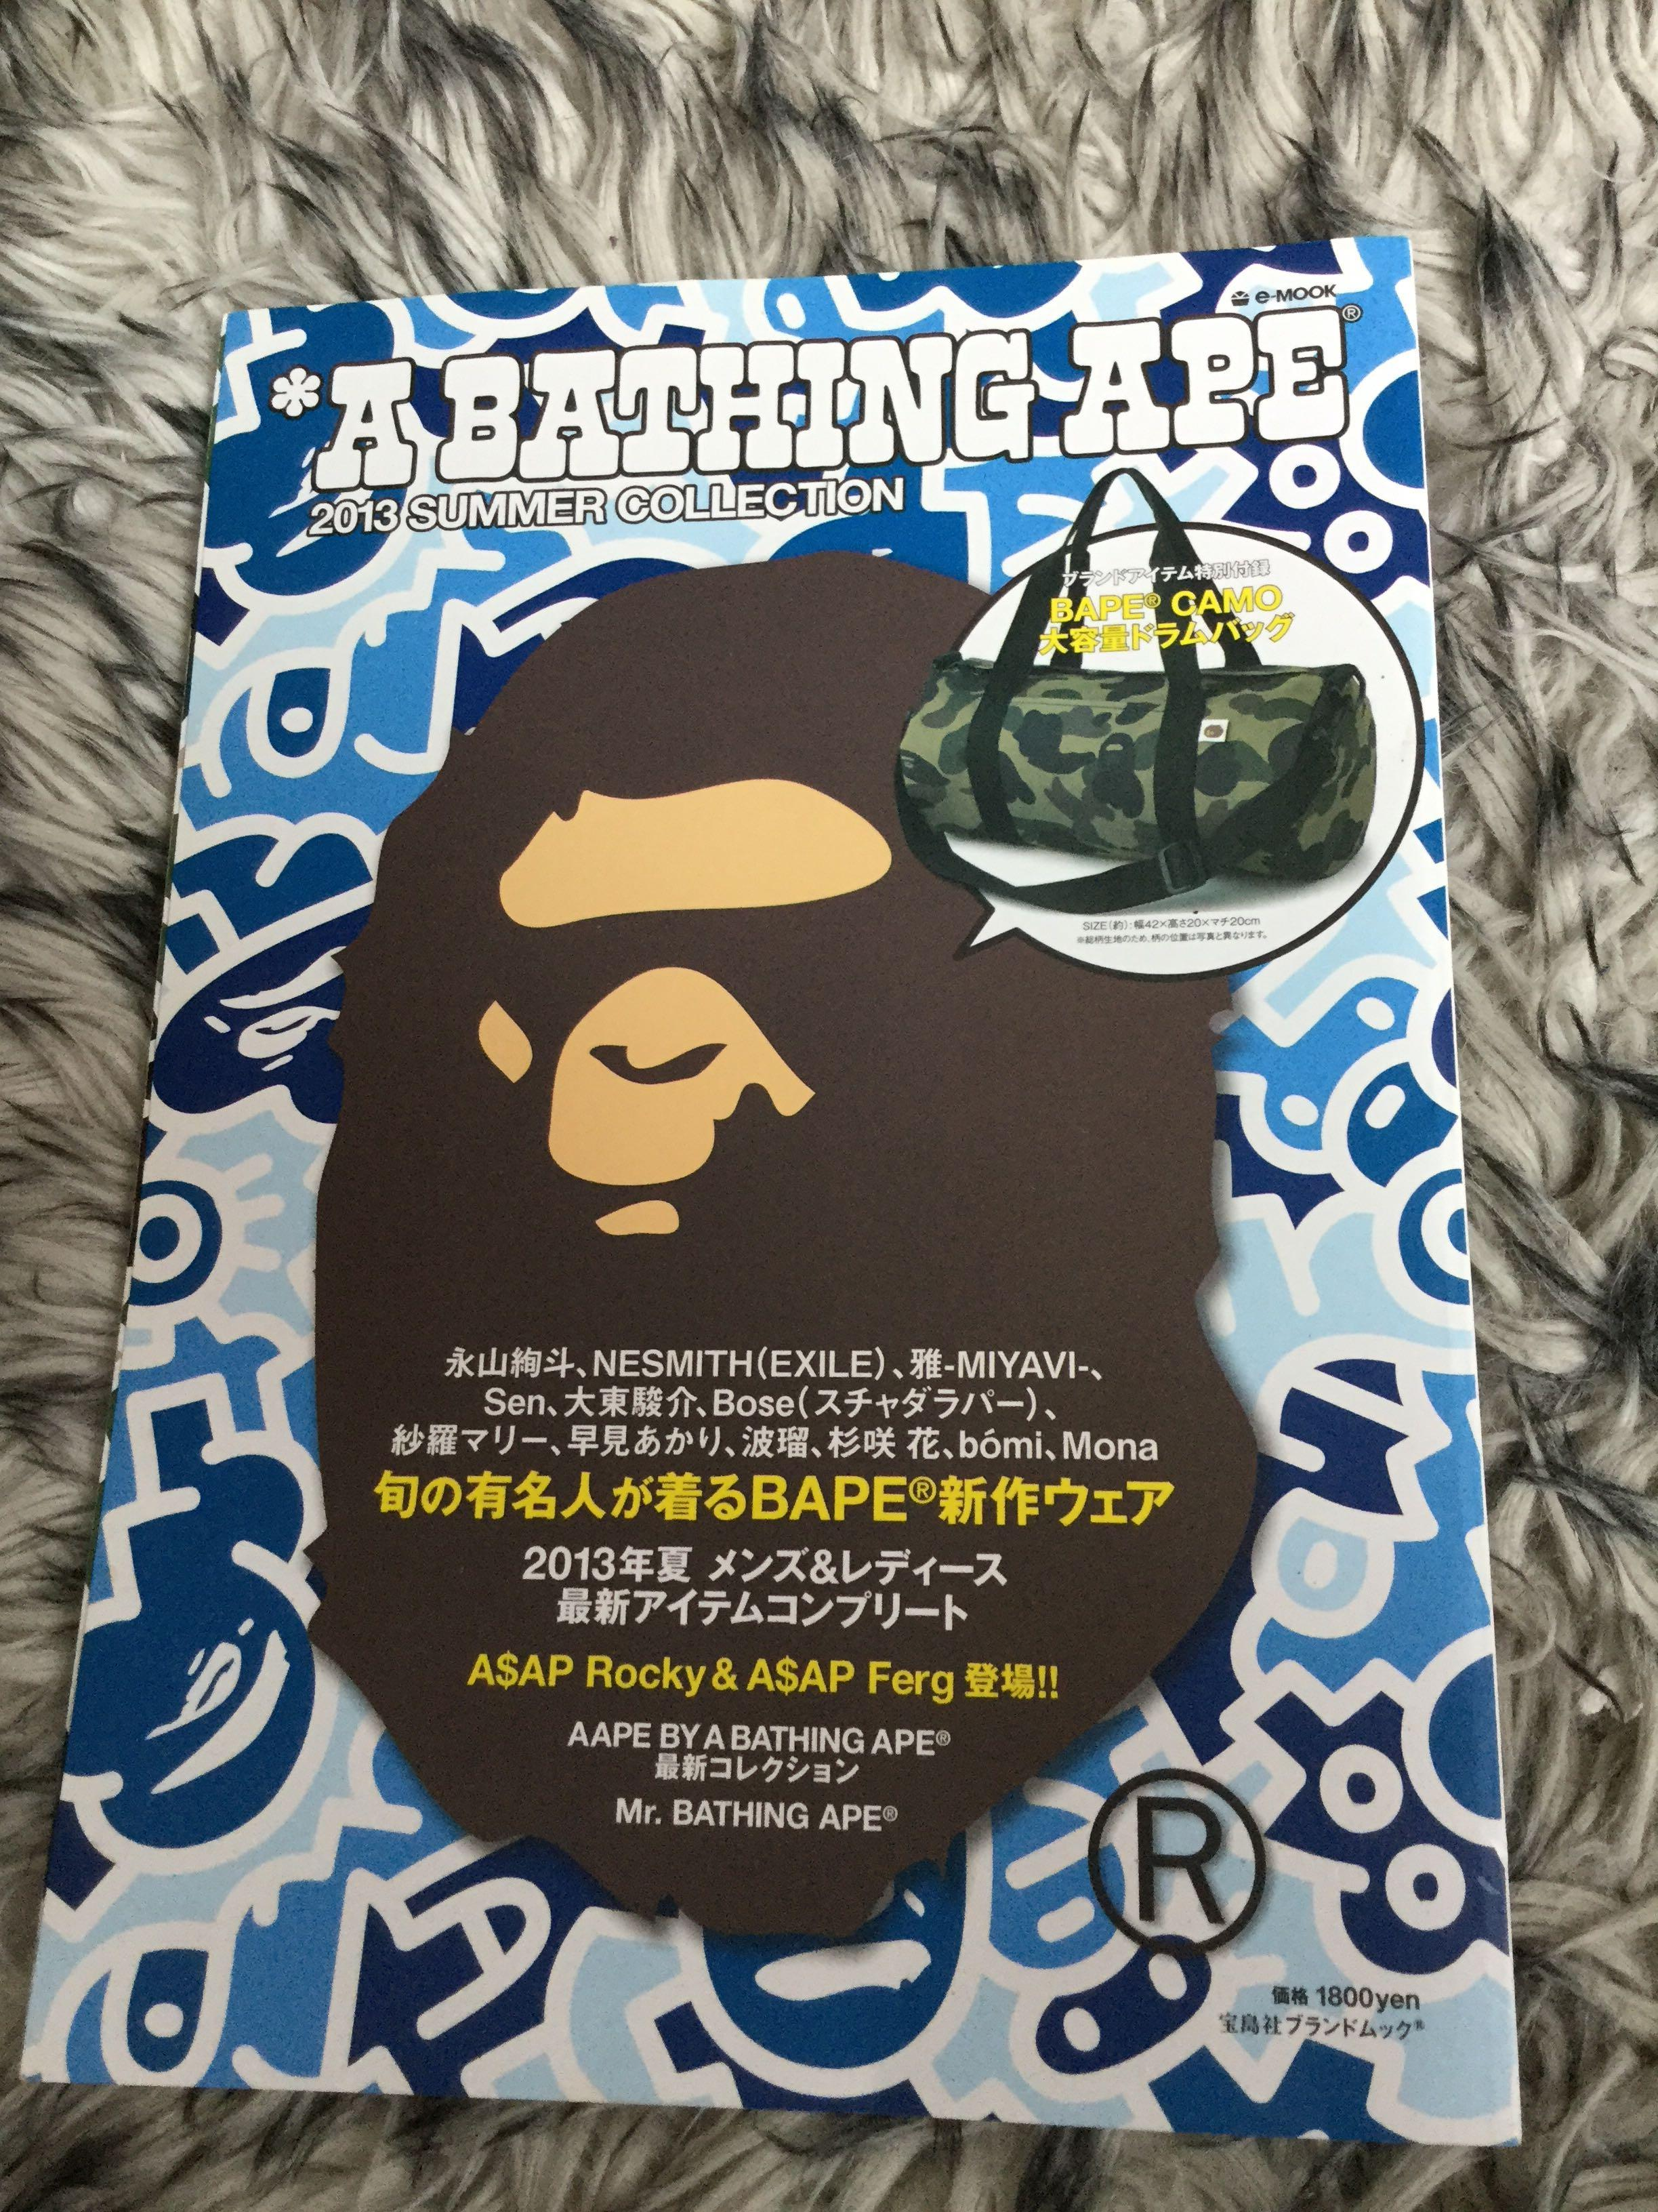 ***Authentic A Bathing Ape*** camouflage mini duffel bag 2013 summer collection